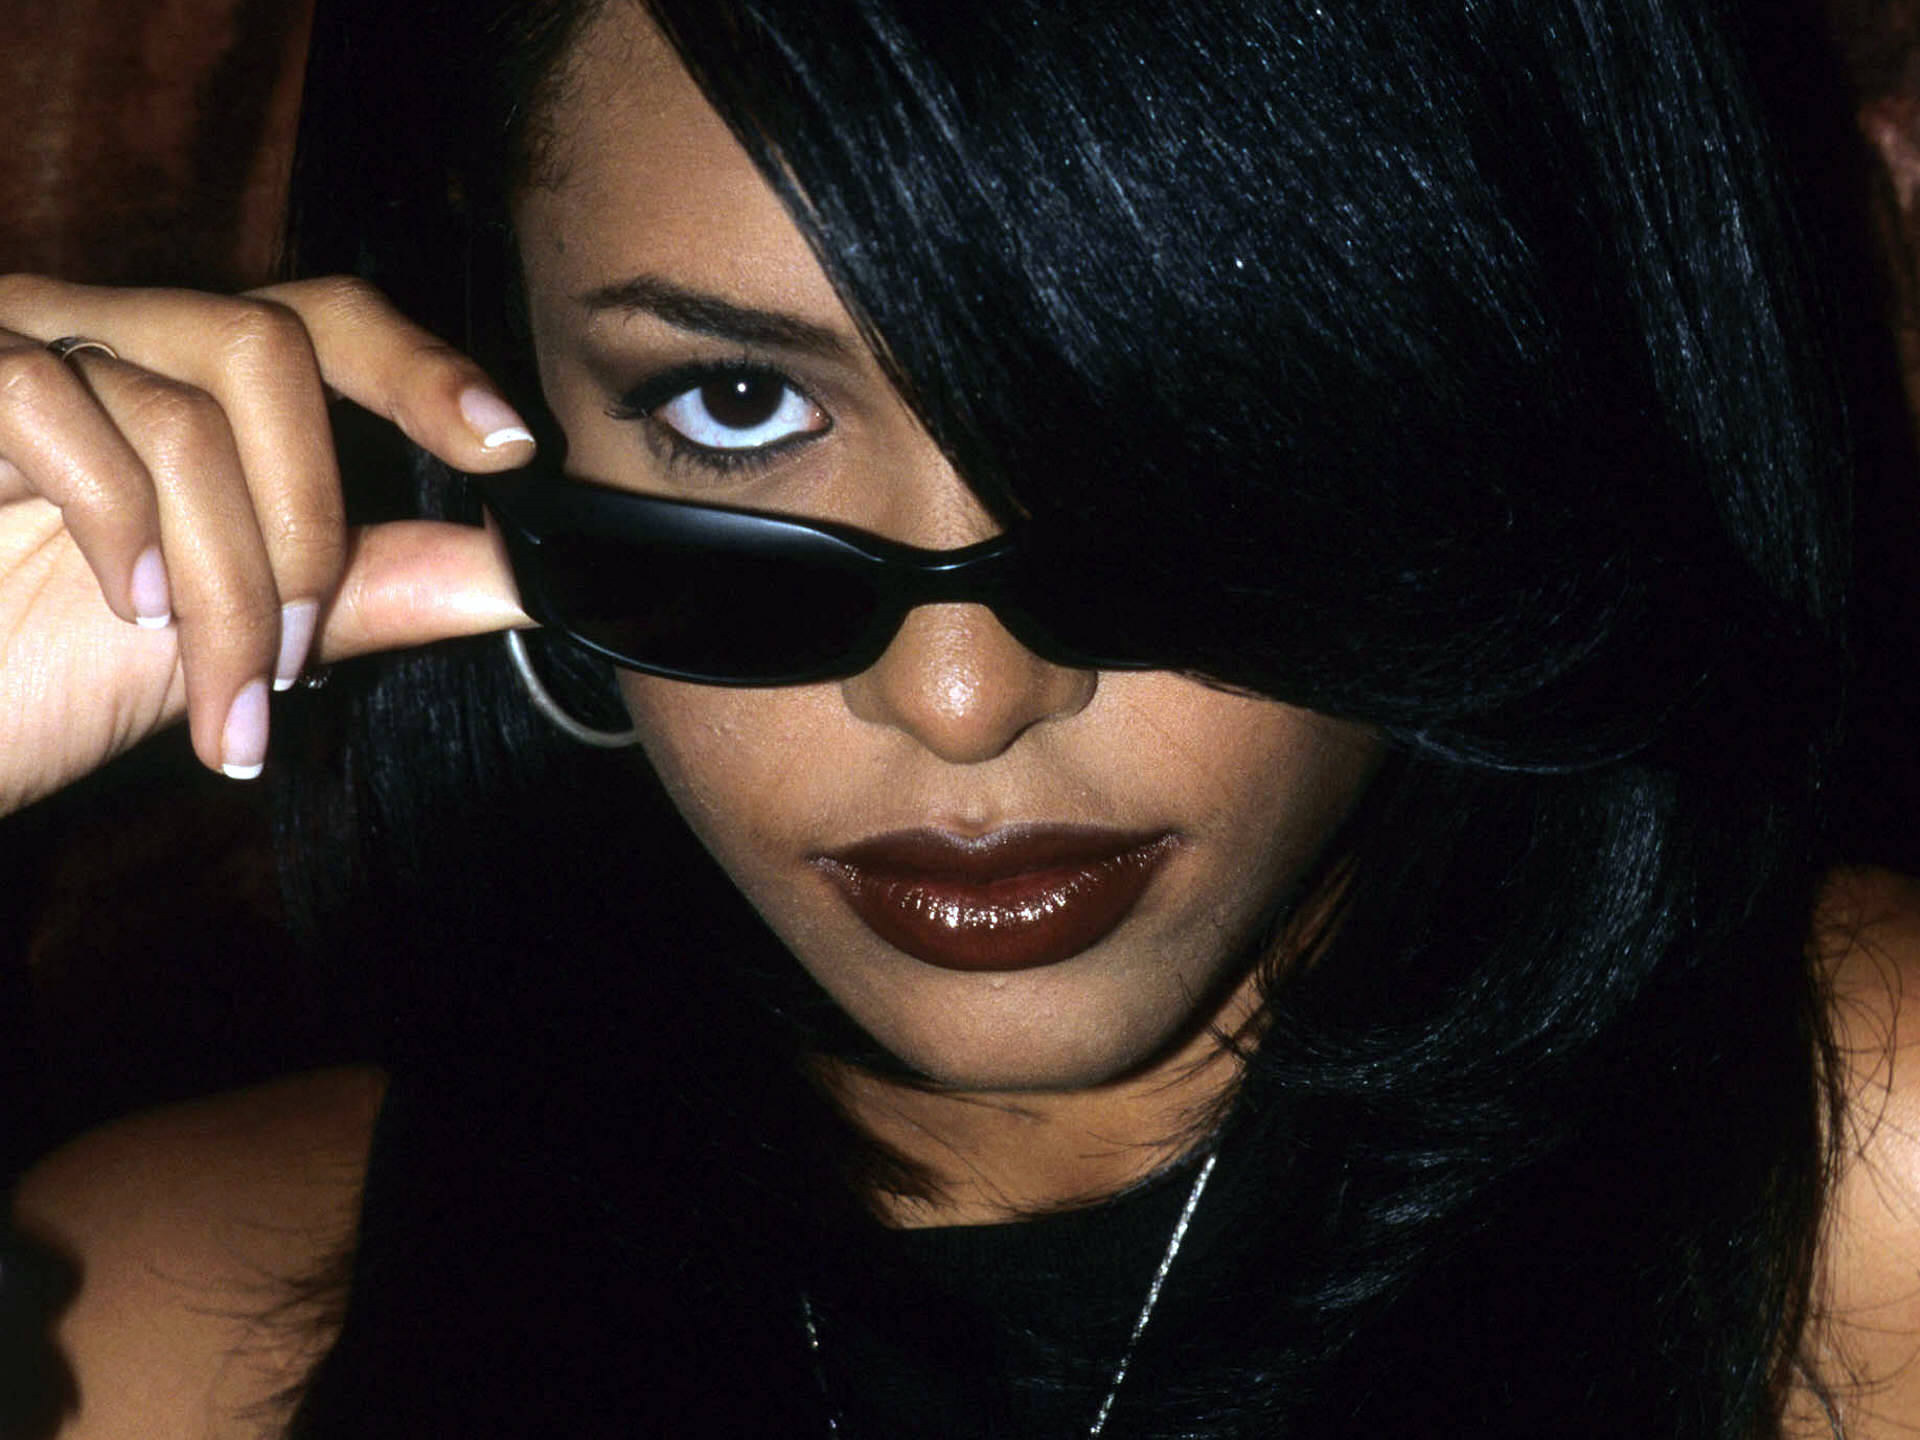 Download HQ Aaliyah wallpaper / Celebrities Female / 1920x1440